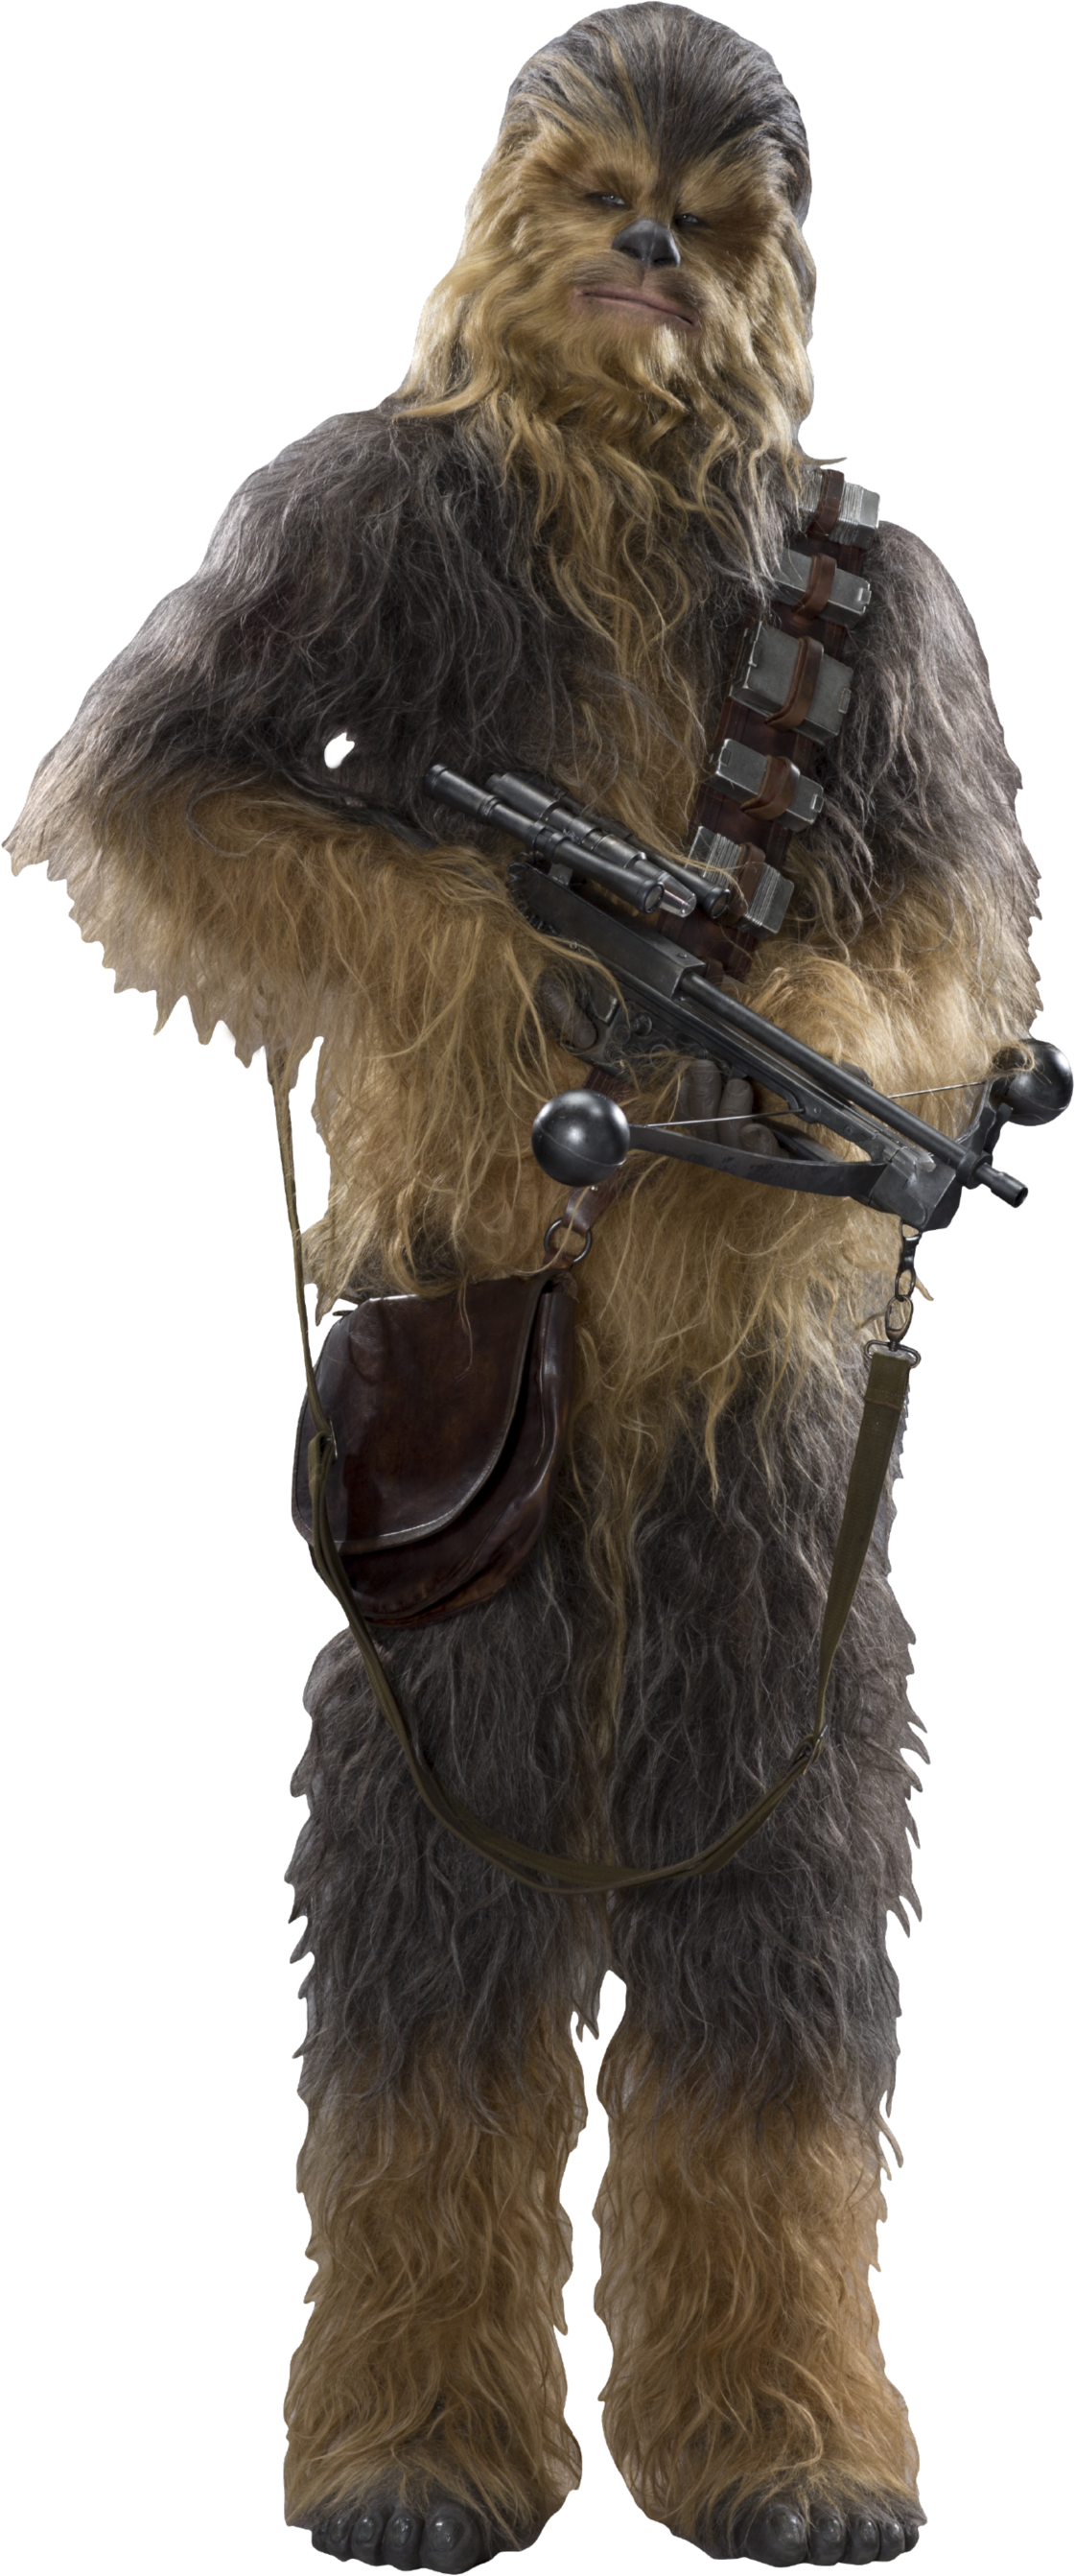 black and white library Chewbacca transparent. Png clipart mart